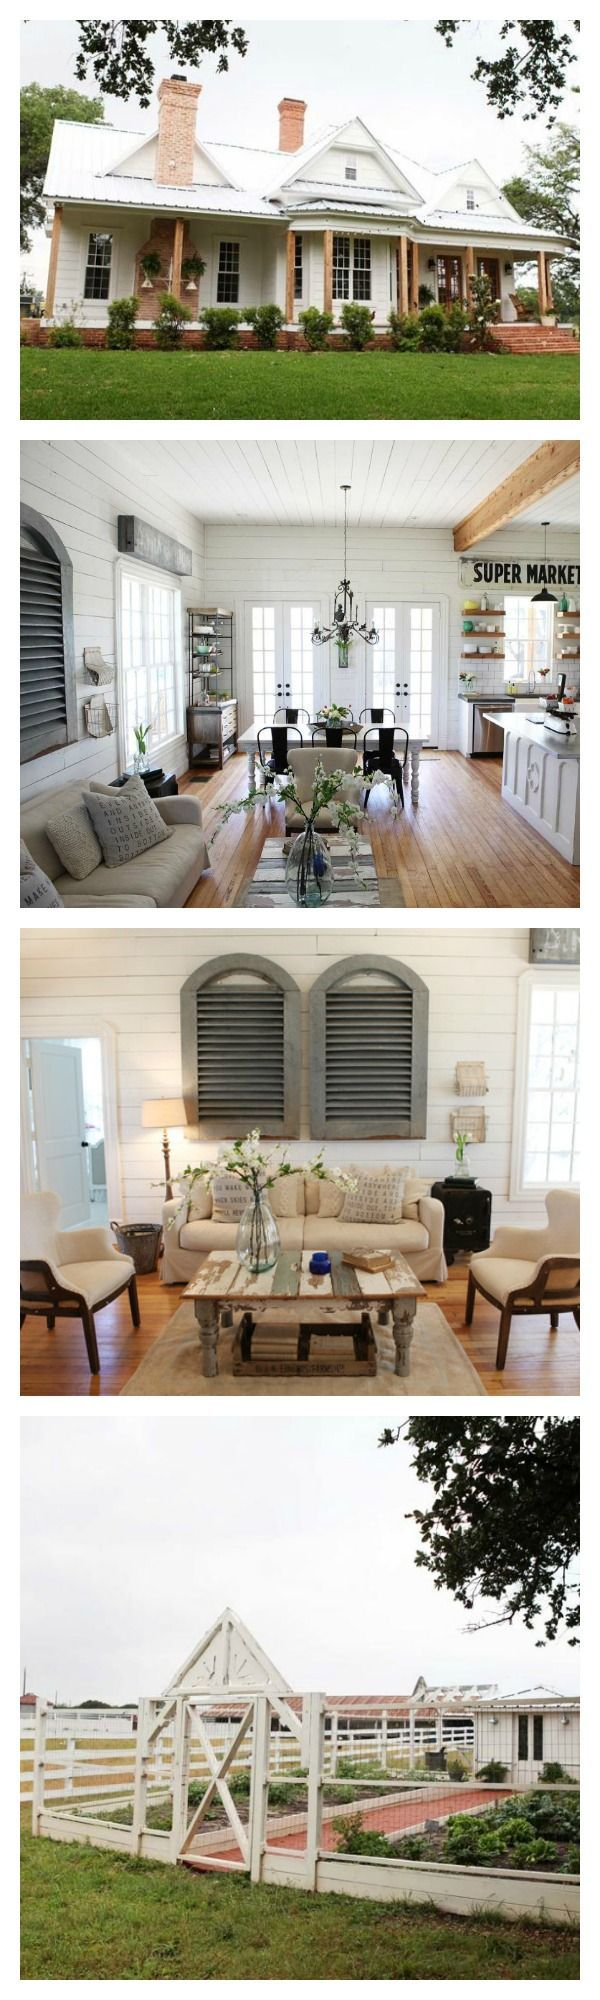 tour chip and joanna gaines 39 farmhouse like you 39 ve never seen it before my country dream. Black Bedroom Furniture Sets. Home Design Ideas